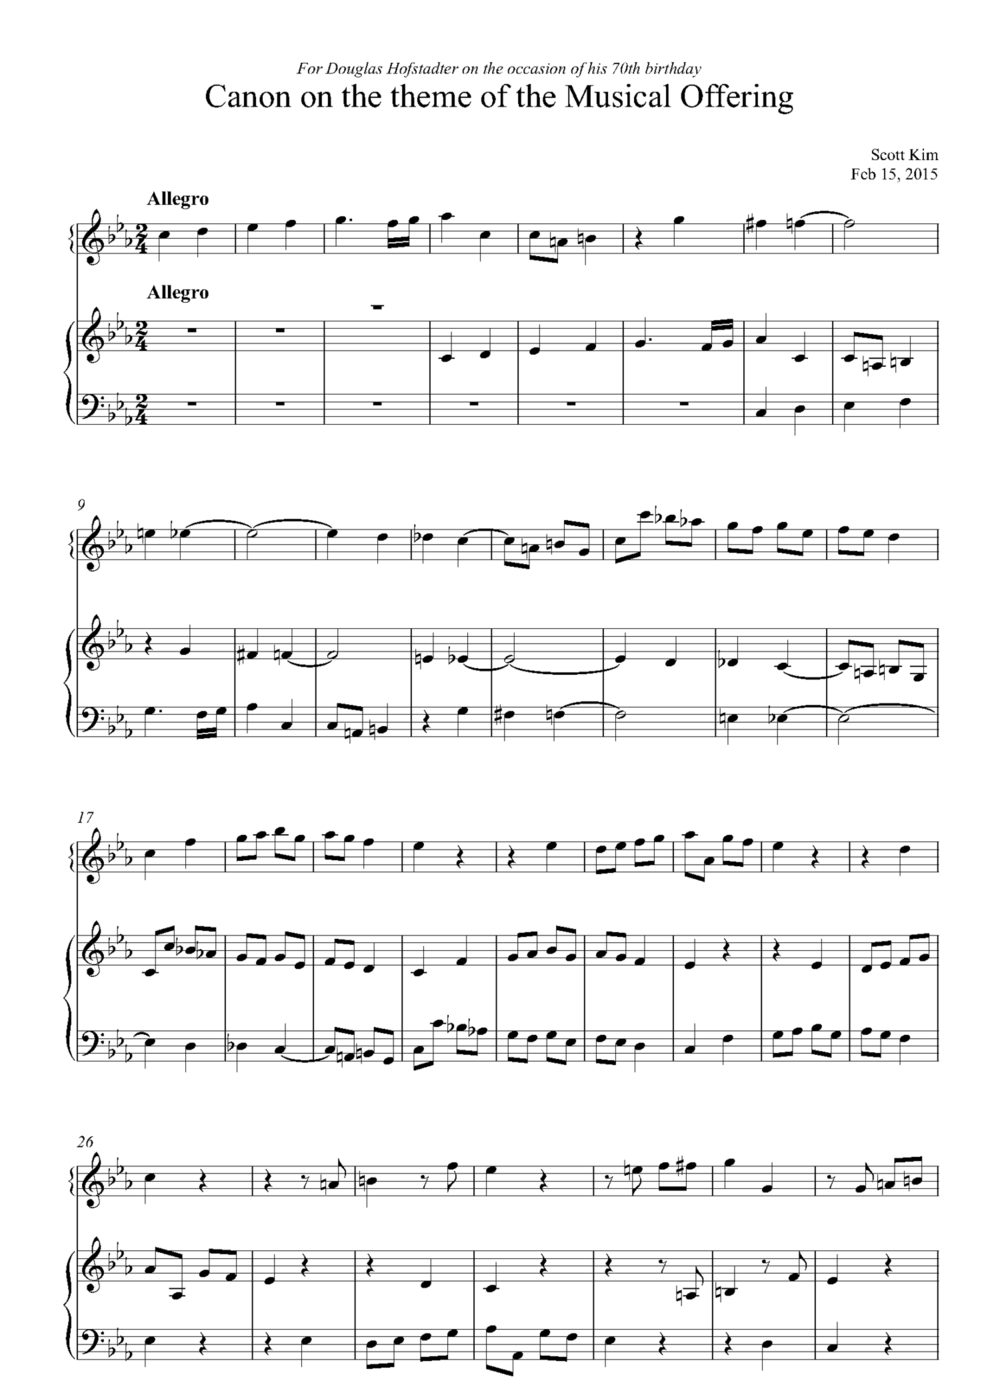 musical offering canon 3 voices delay 6 quarters c twp repetitions - Full Score_Page_1.png